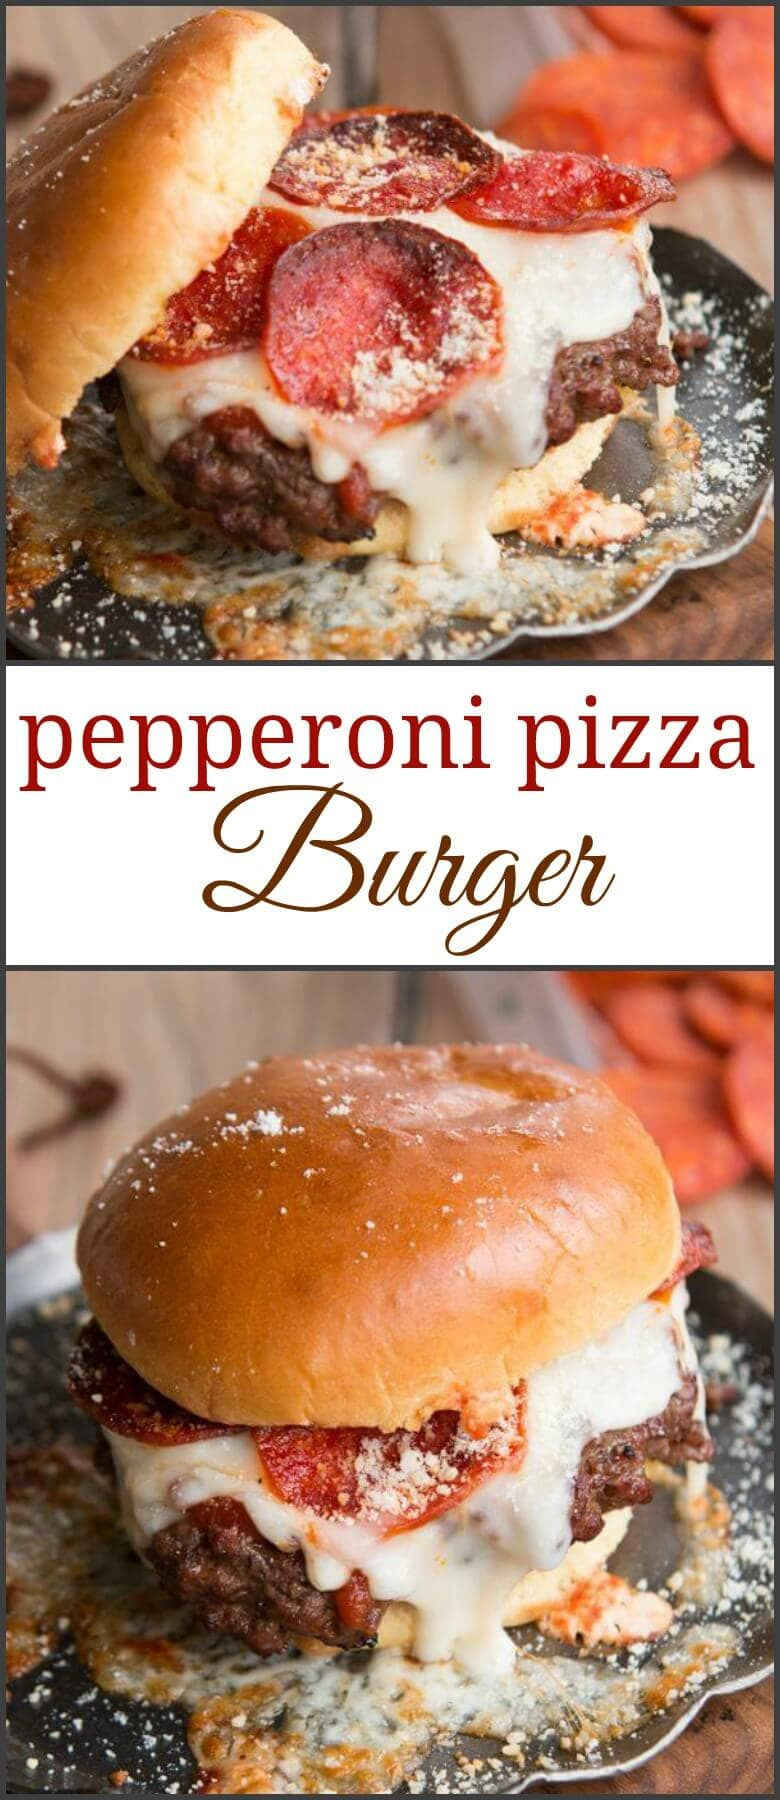 So you think a juicy burger sounds good? Try this pepperoni pizza burger instead and let your taste buds go crazy! So delicious! ohsweetbasil.com